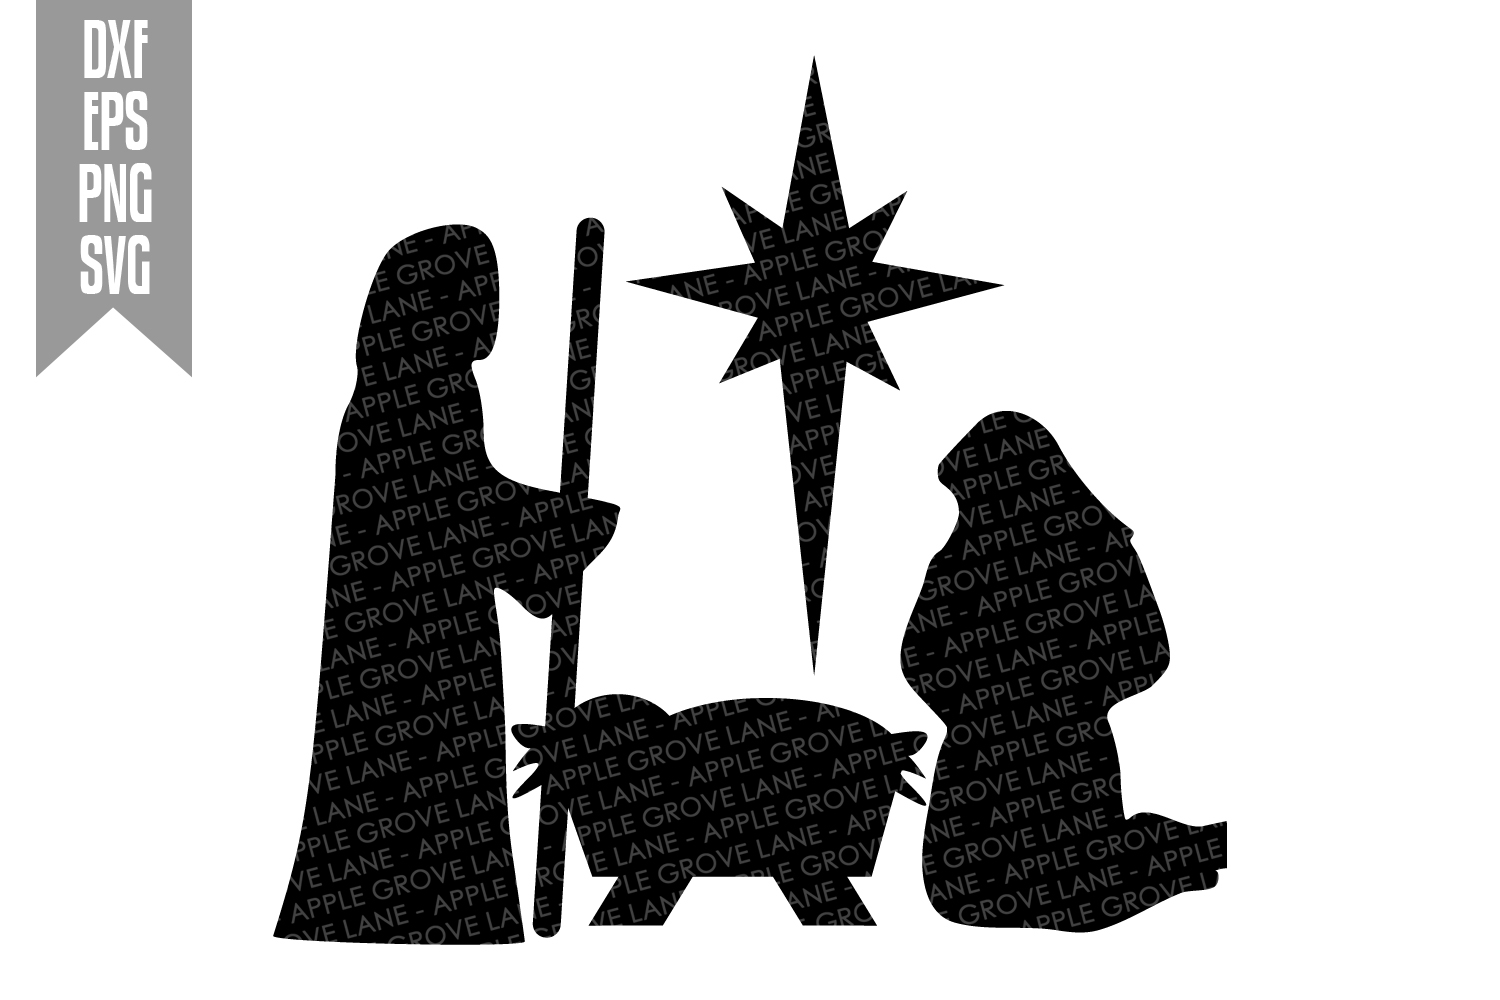 Nativity Svg Bundle - 9 designs included - Svg Cut Files example image 6